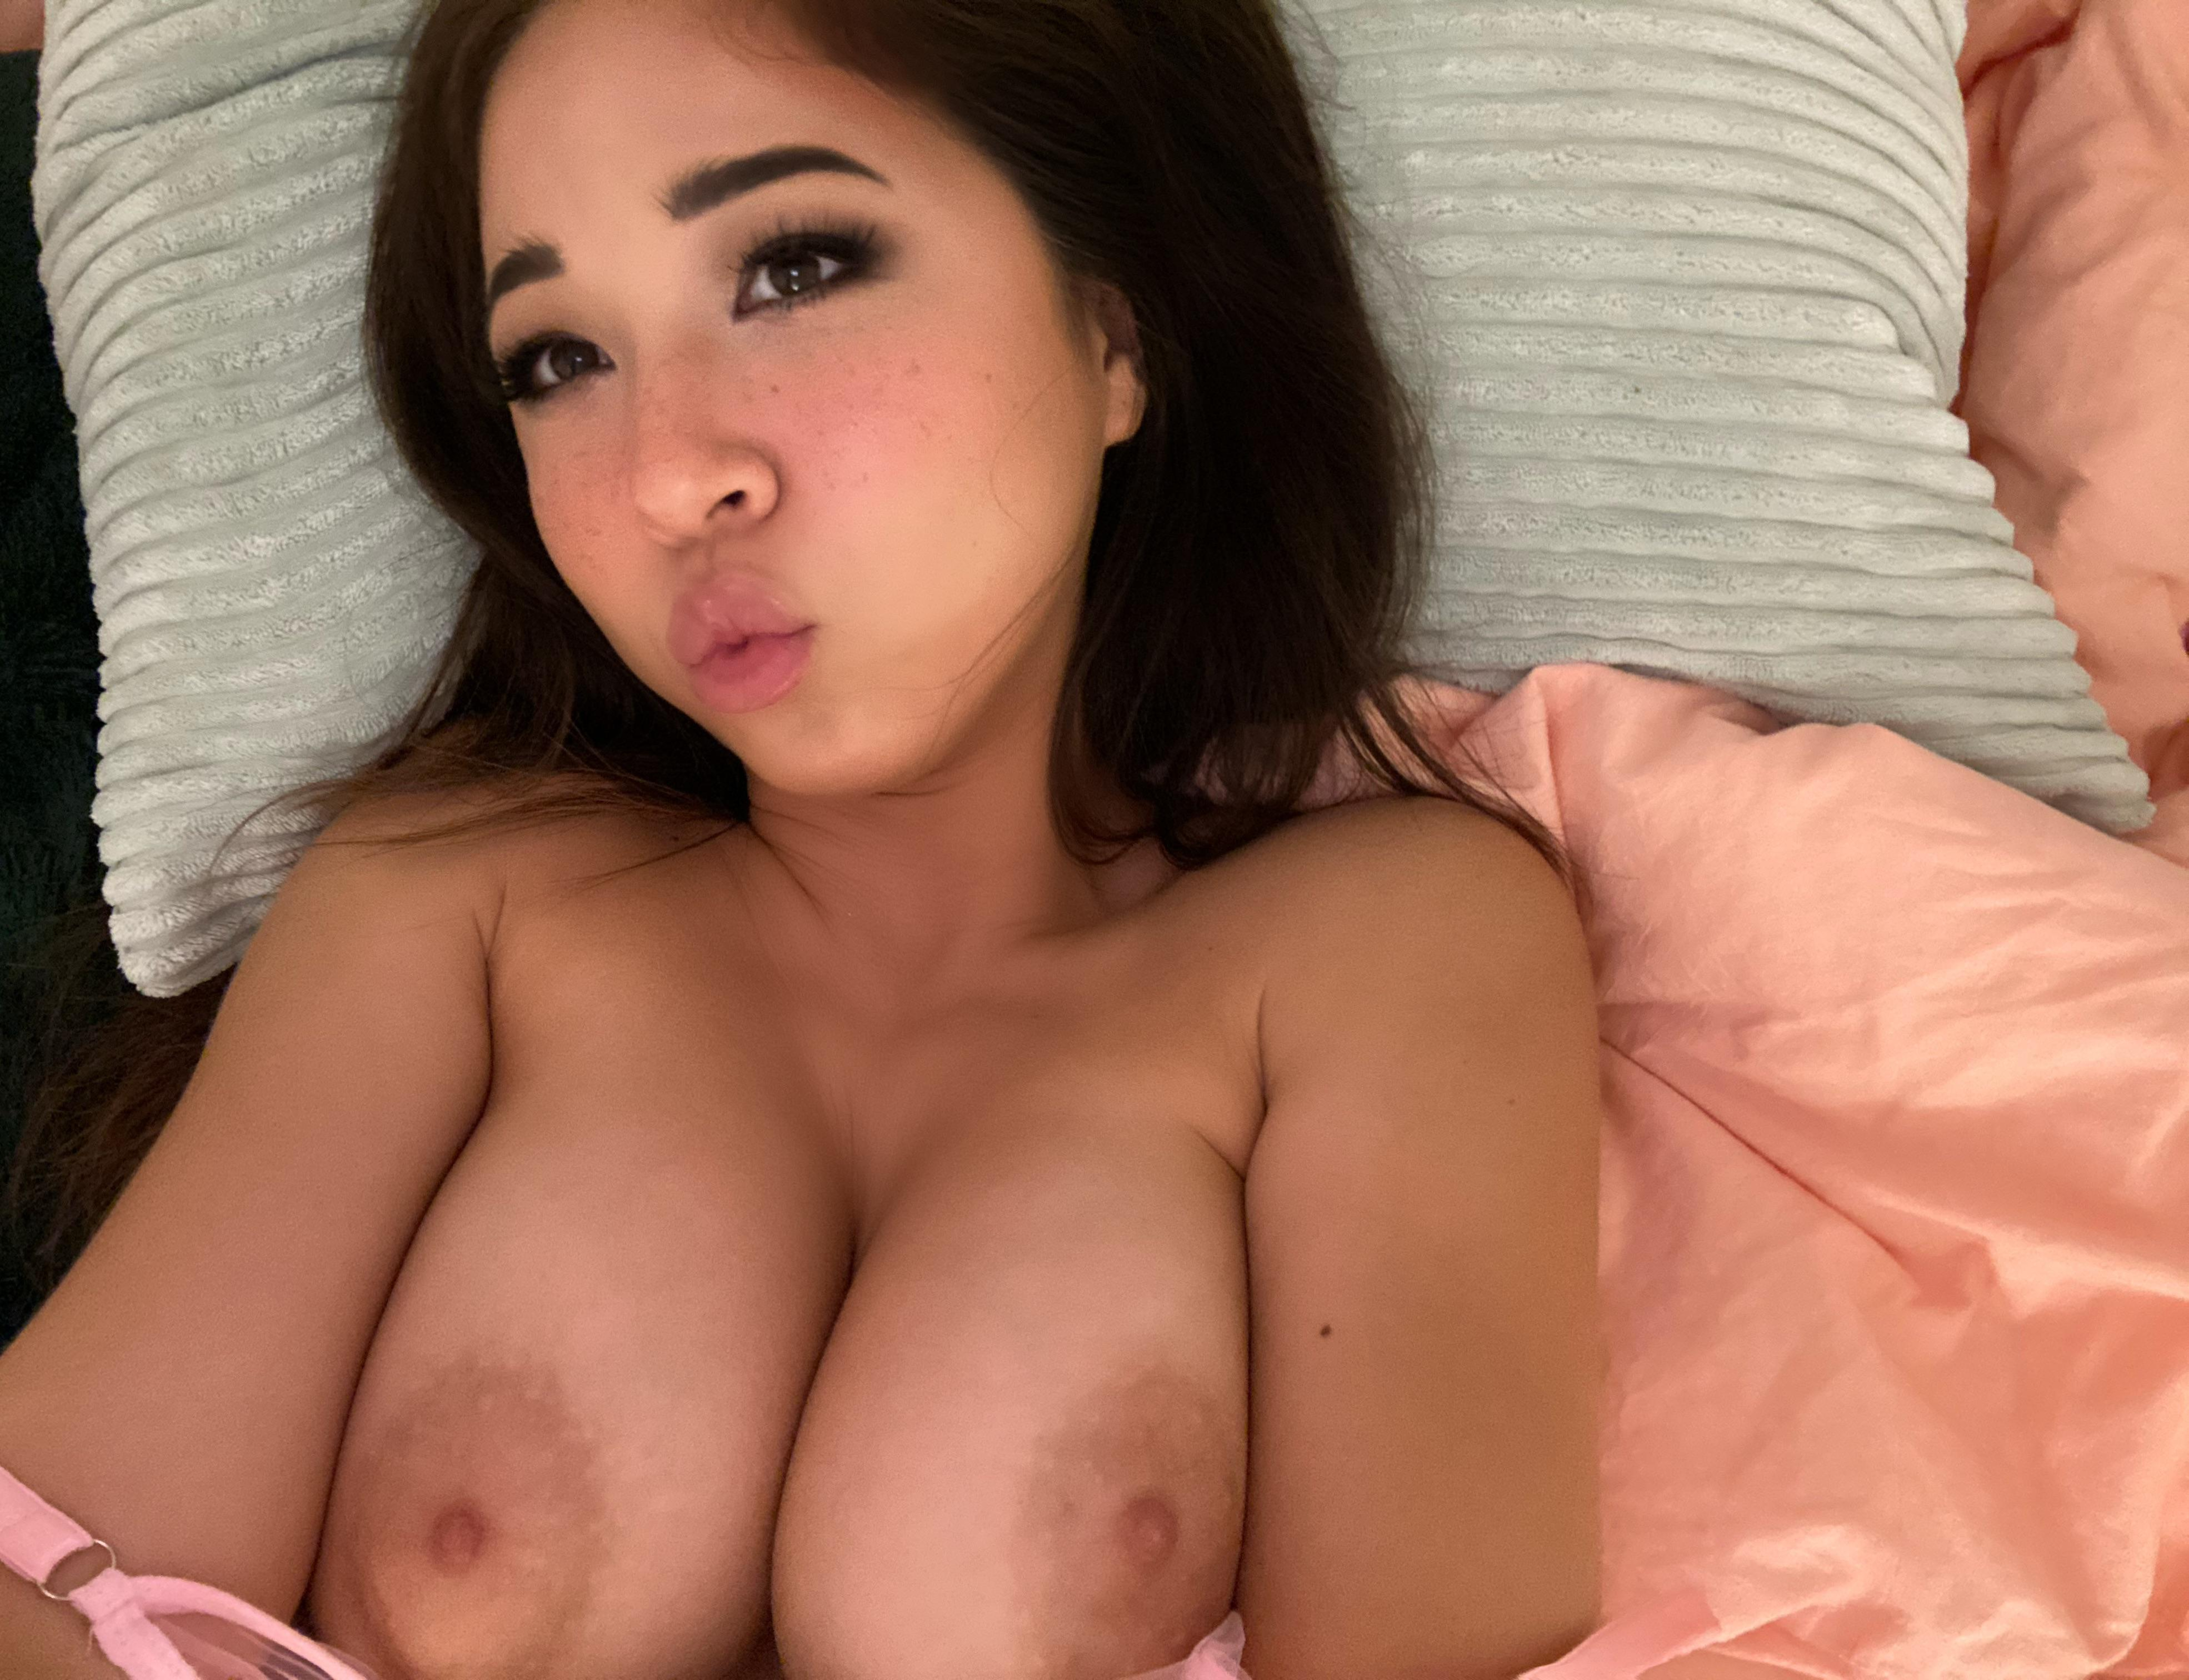 One of our naked asian pics called Juicy enough for you? 💕